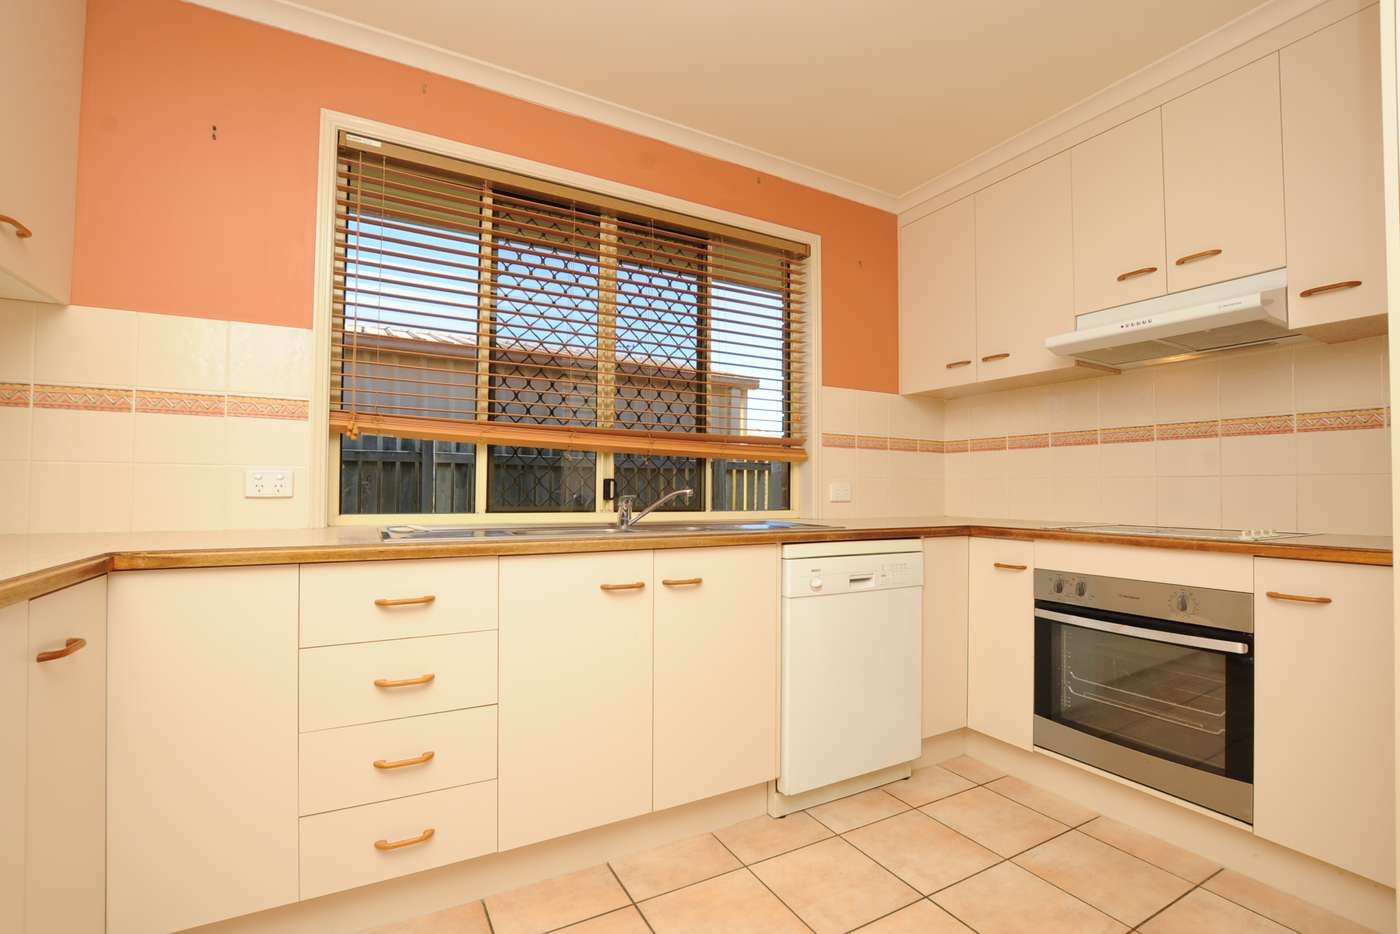 Seventh view of Homely house listing, 17 Maike Street, Kalkie QLD 4670